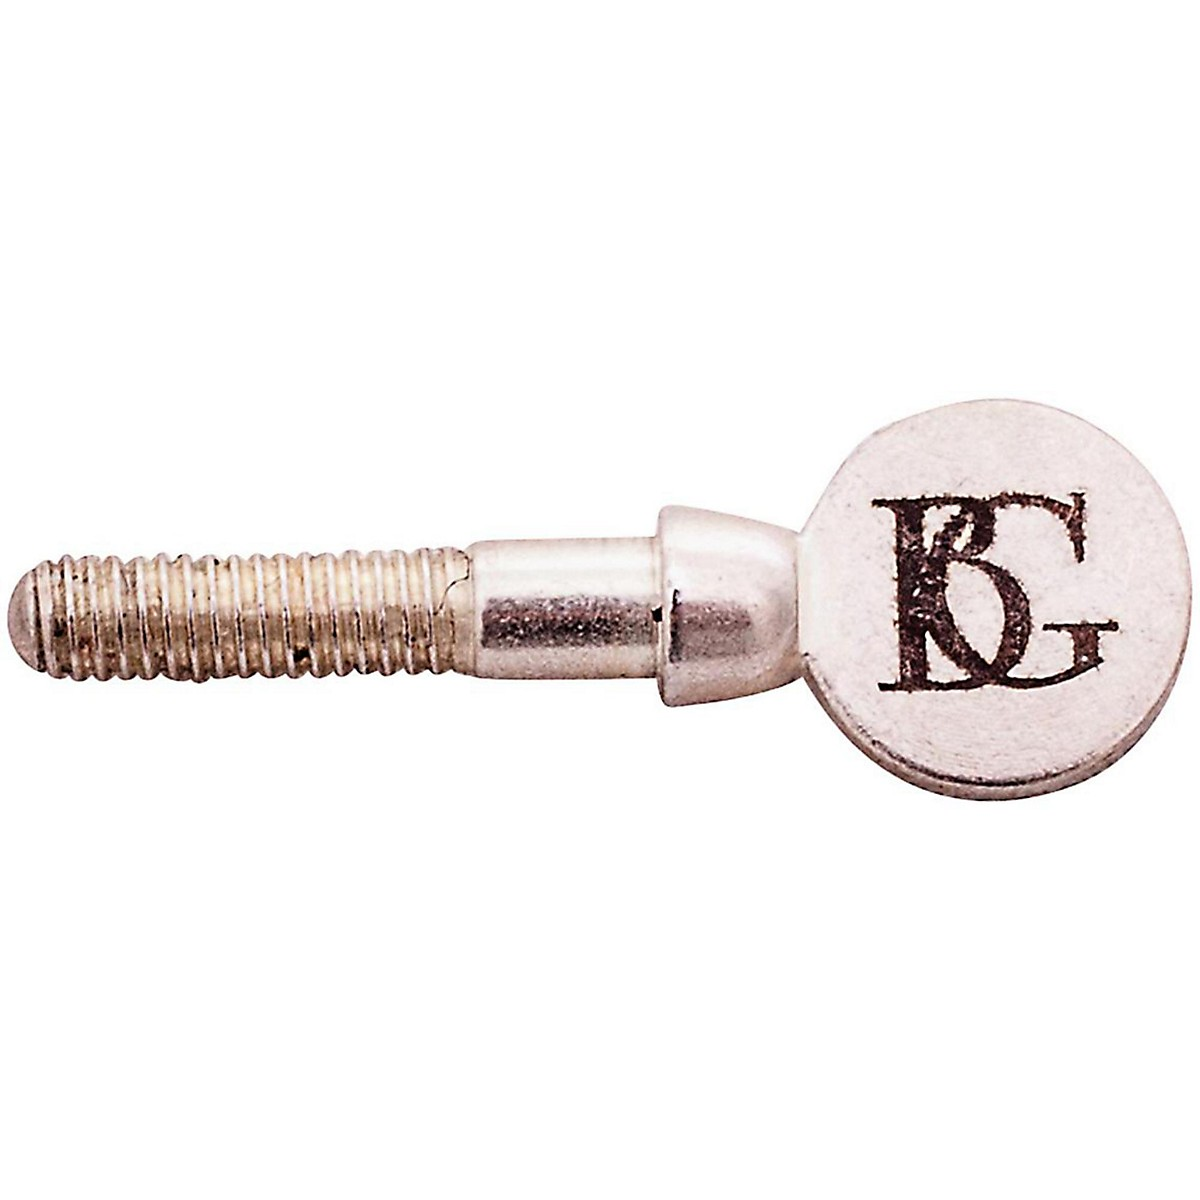 BG Silver-Plated Spare Ligature Screw